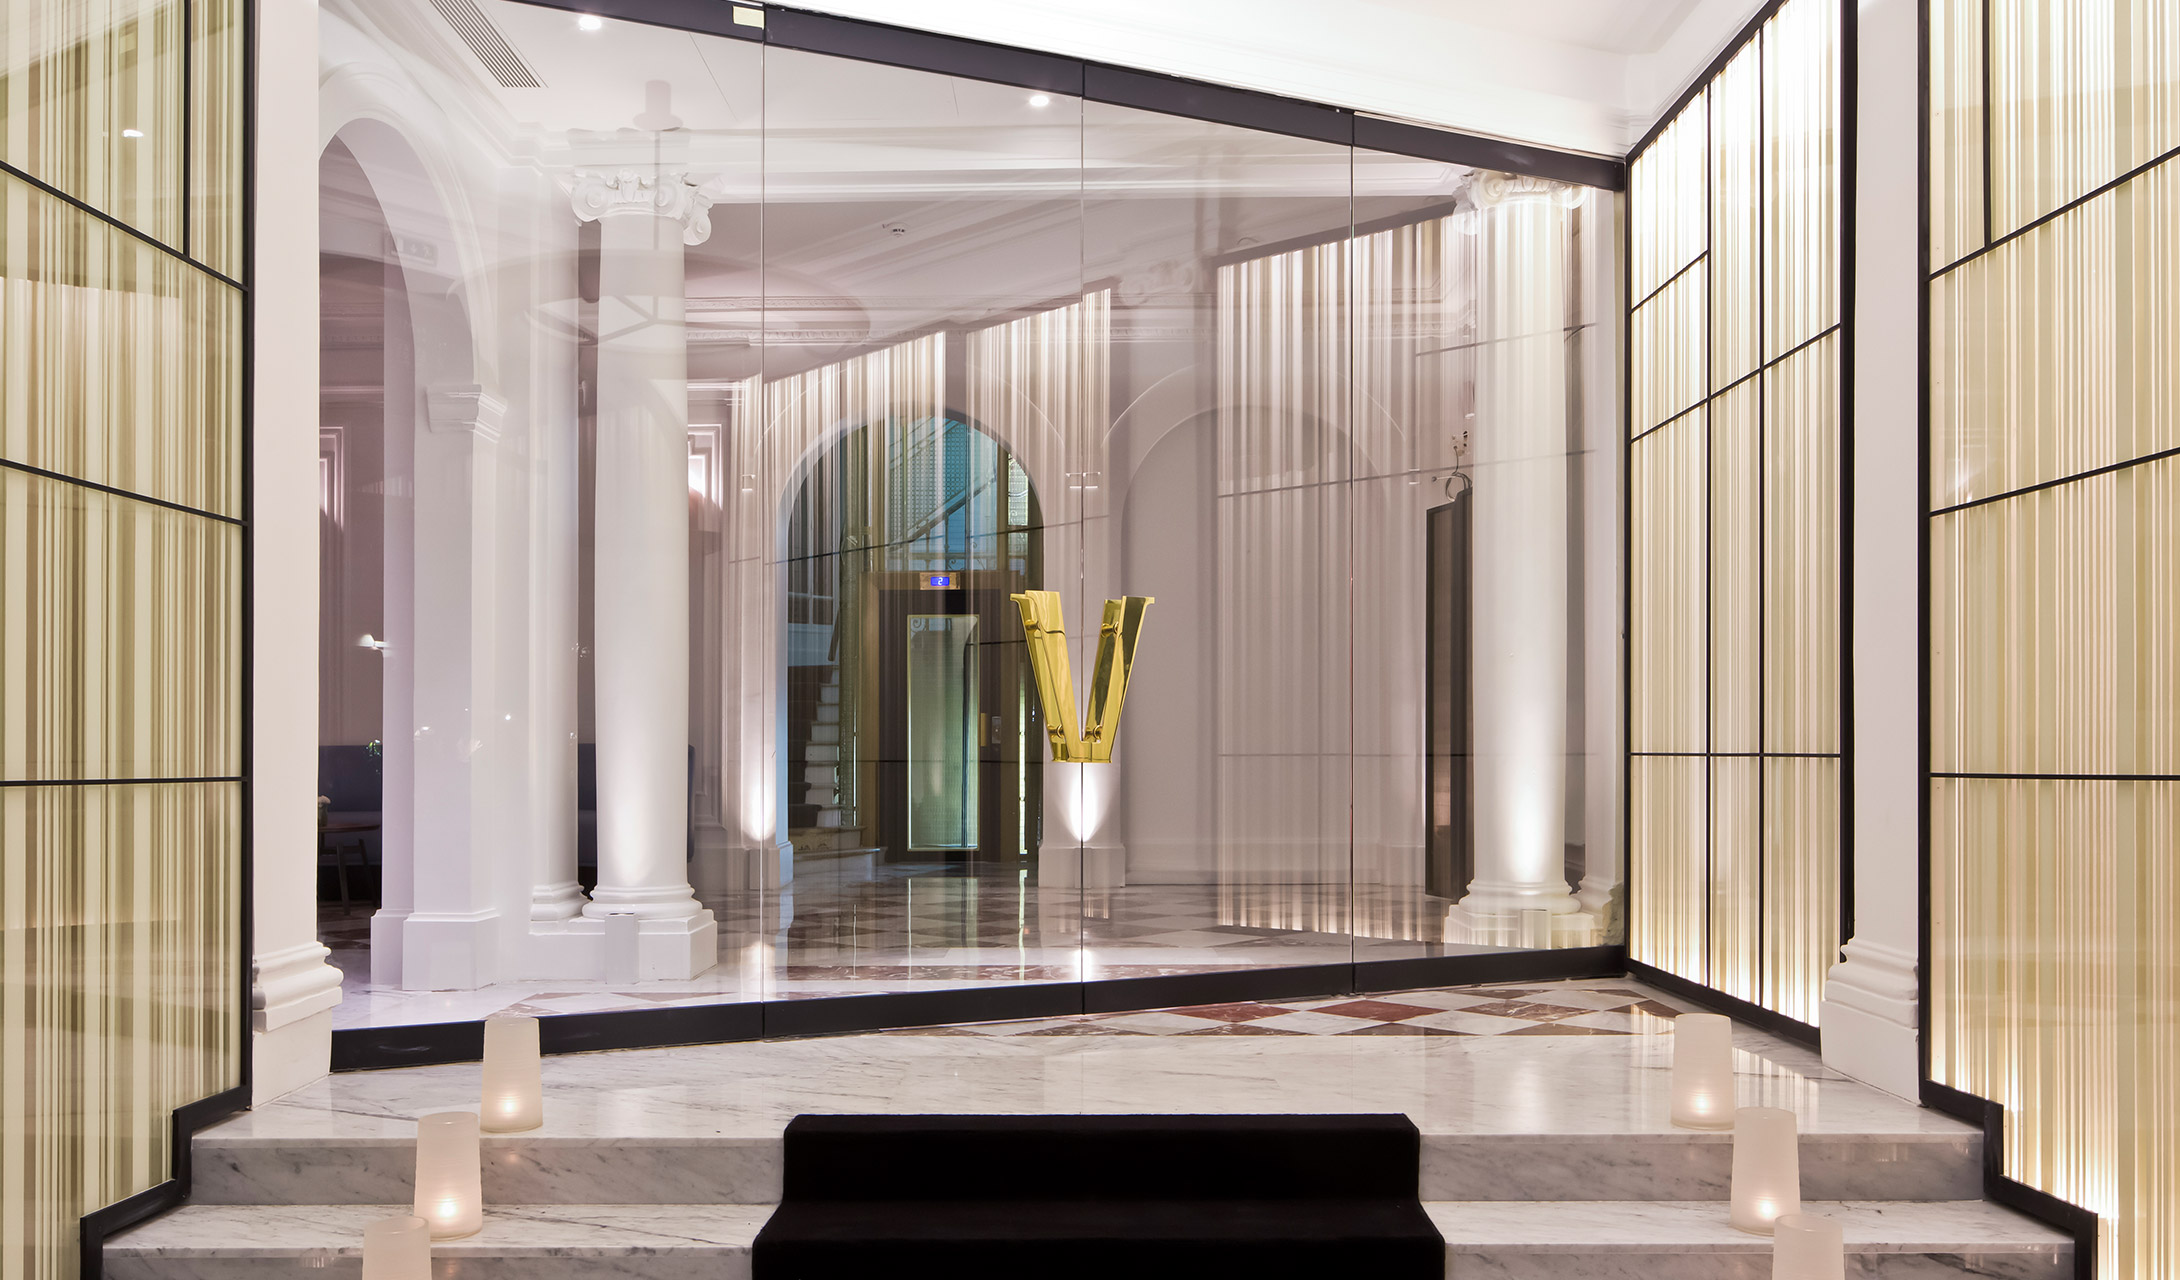 Hotel vernet champs elys es paris france design hotels for Design hotels france